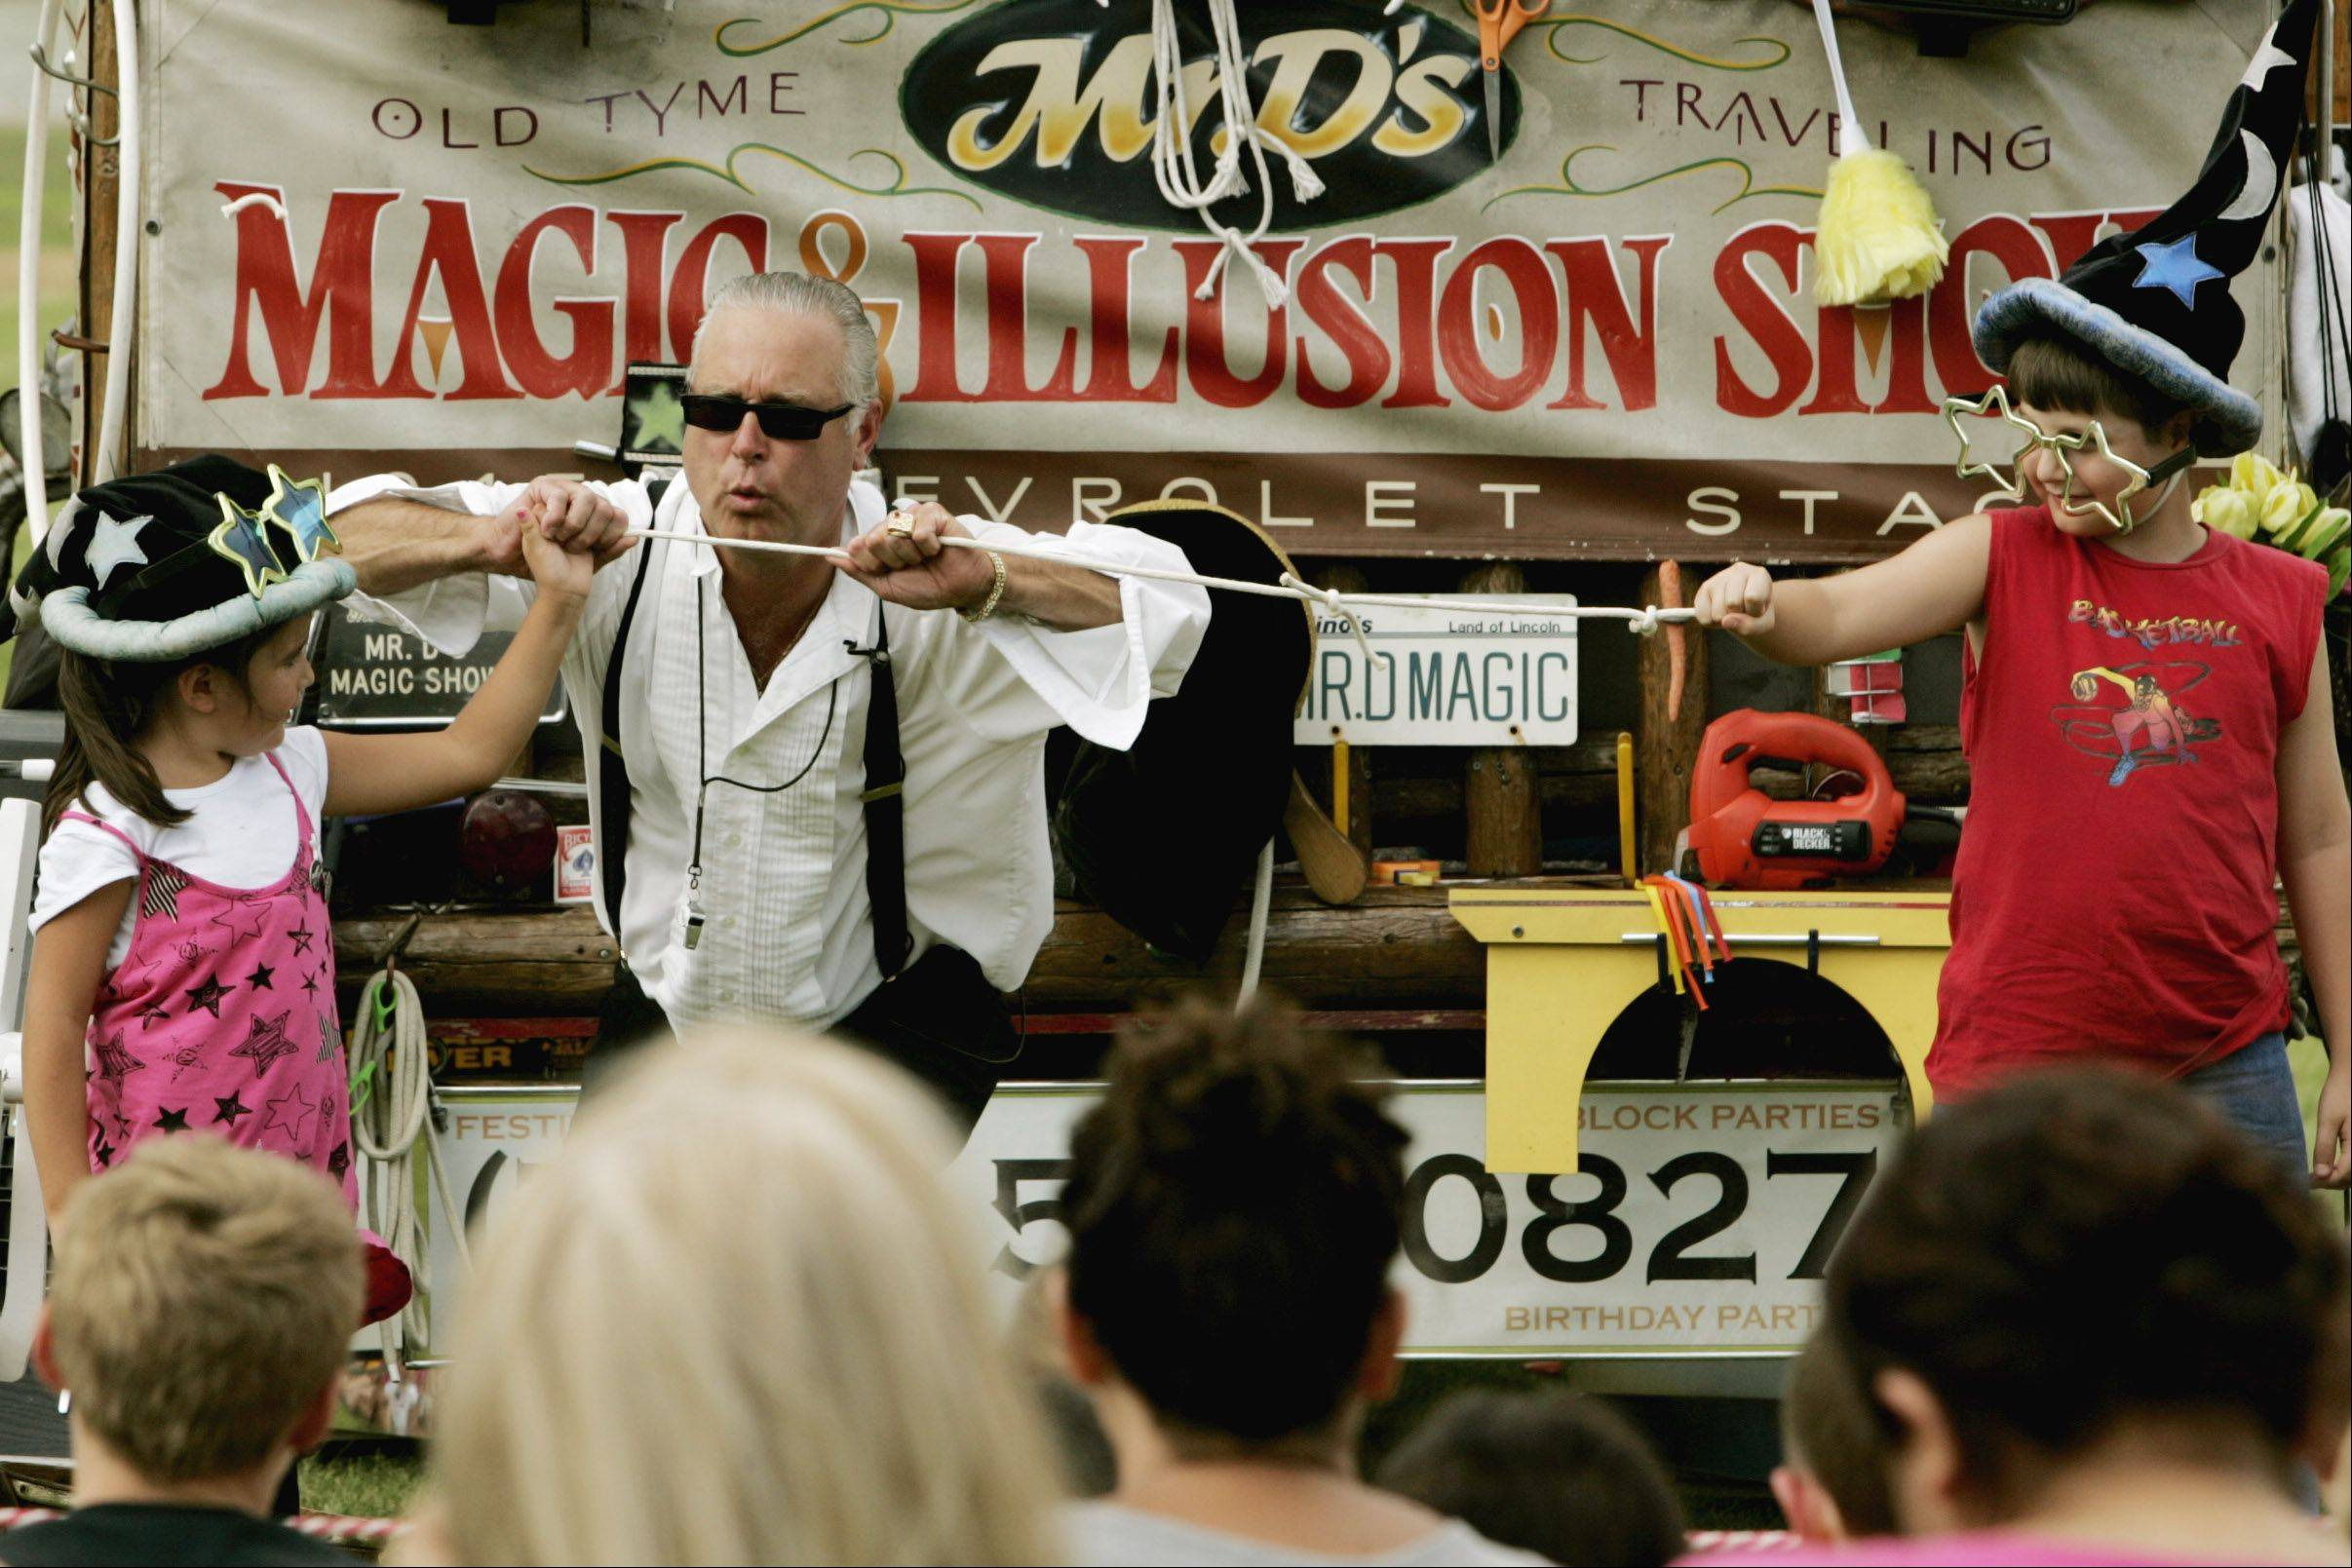 Mr. D's Magic shows will return to LibertyFest in Bensenville on Wednesday. The event also includes music, a parade and fireworks.